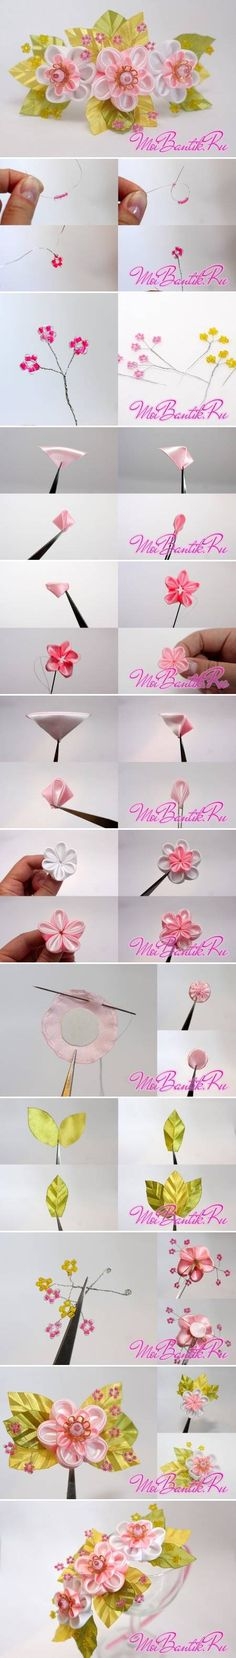 DIY Golden Sakura Ribbon Flower DIY Golden Sakura Ribbon Flower.....(omGEE!...love, LOVE this tutorial and the end result! HAVE TO try it out!!)....